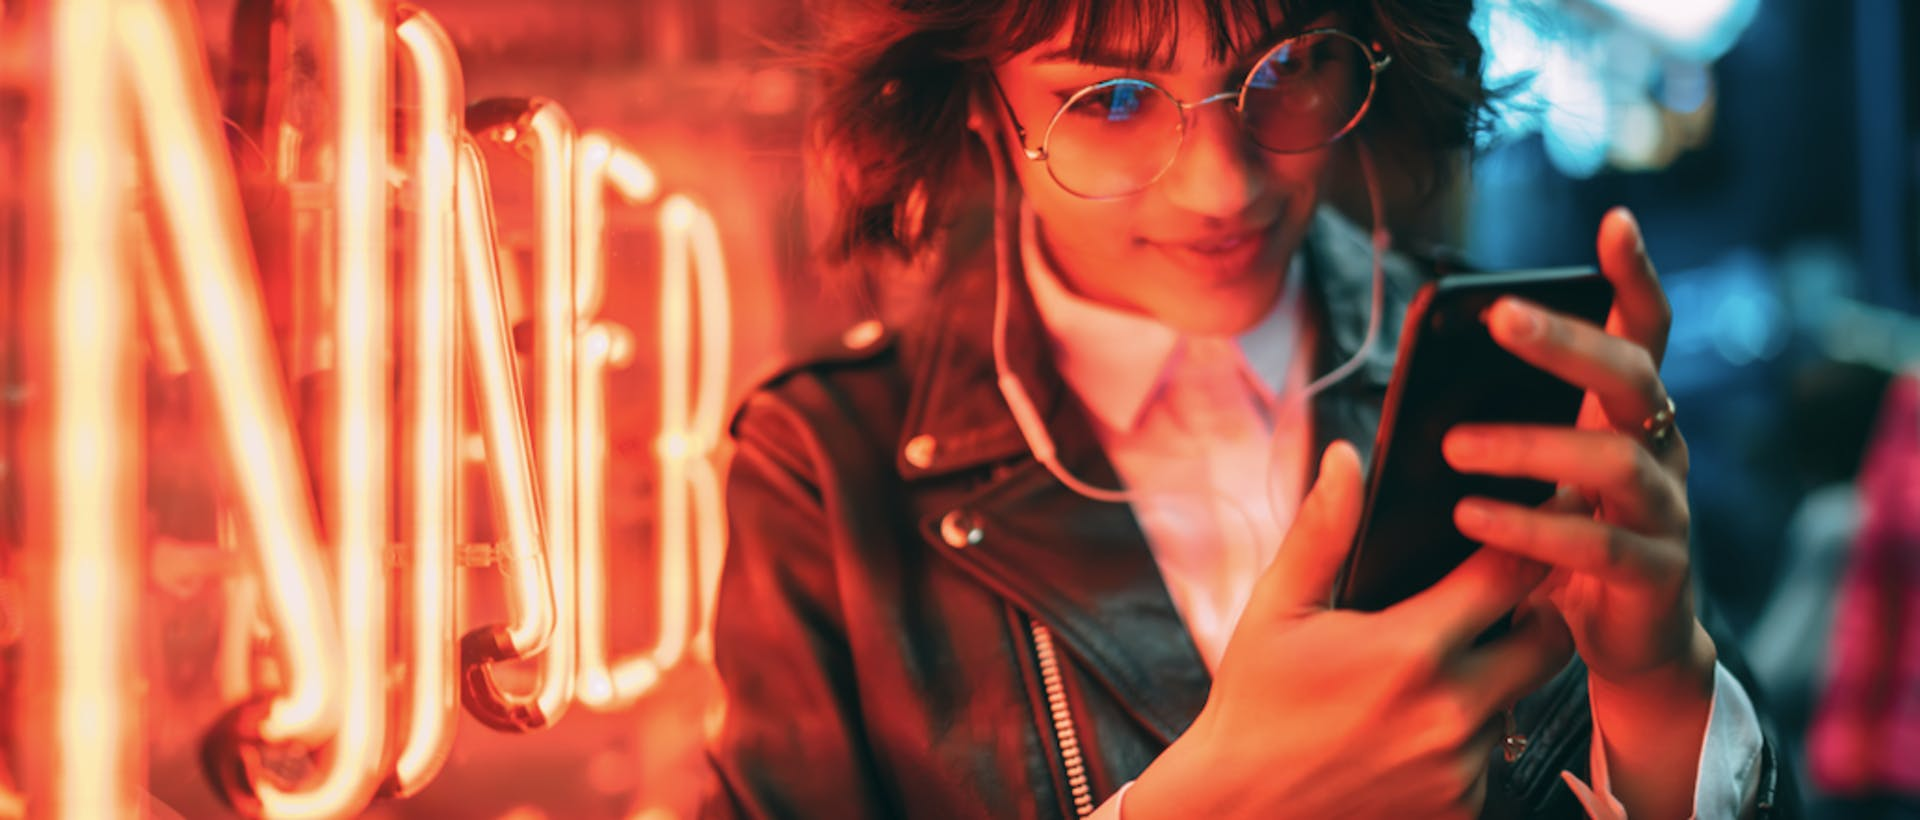 Re-energise your brand - hipster